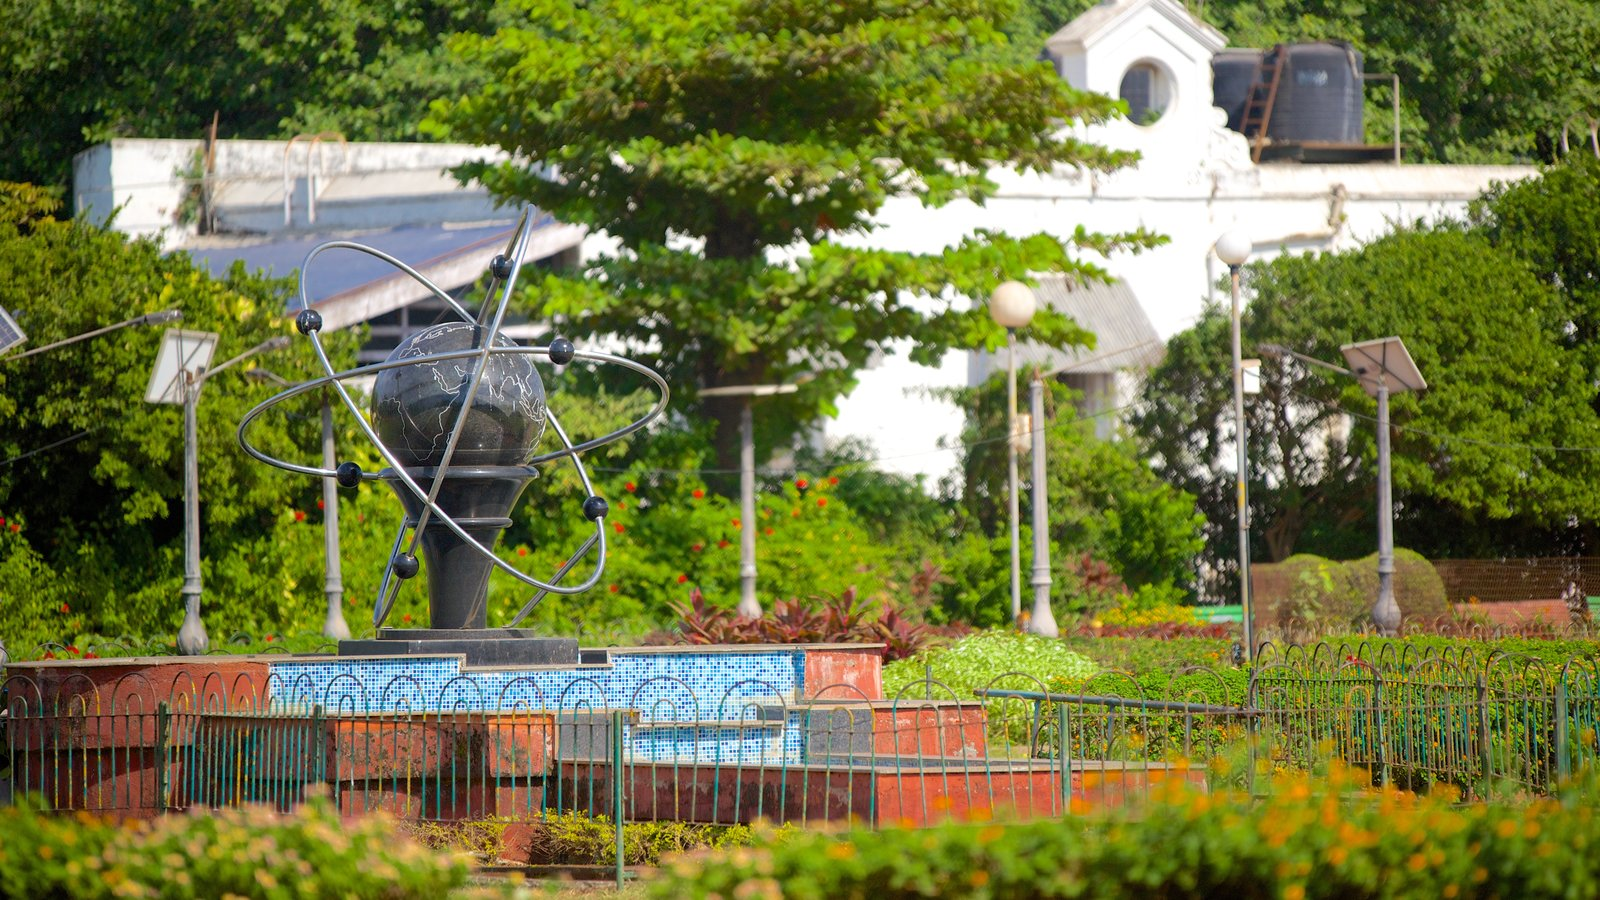 Hanging Gardens Featuring A Park, Outdoor Art And A Statue Or Sculpture